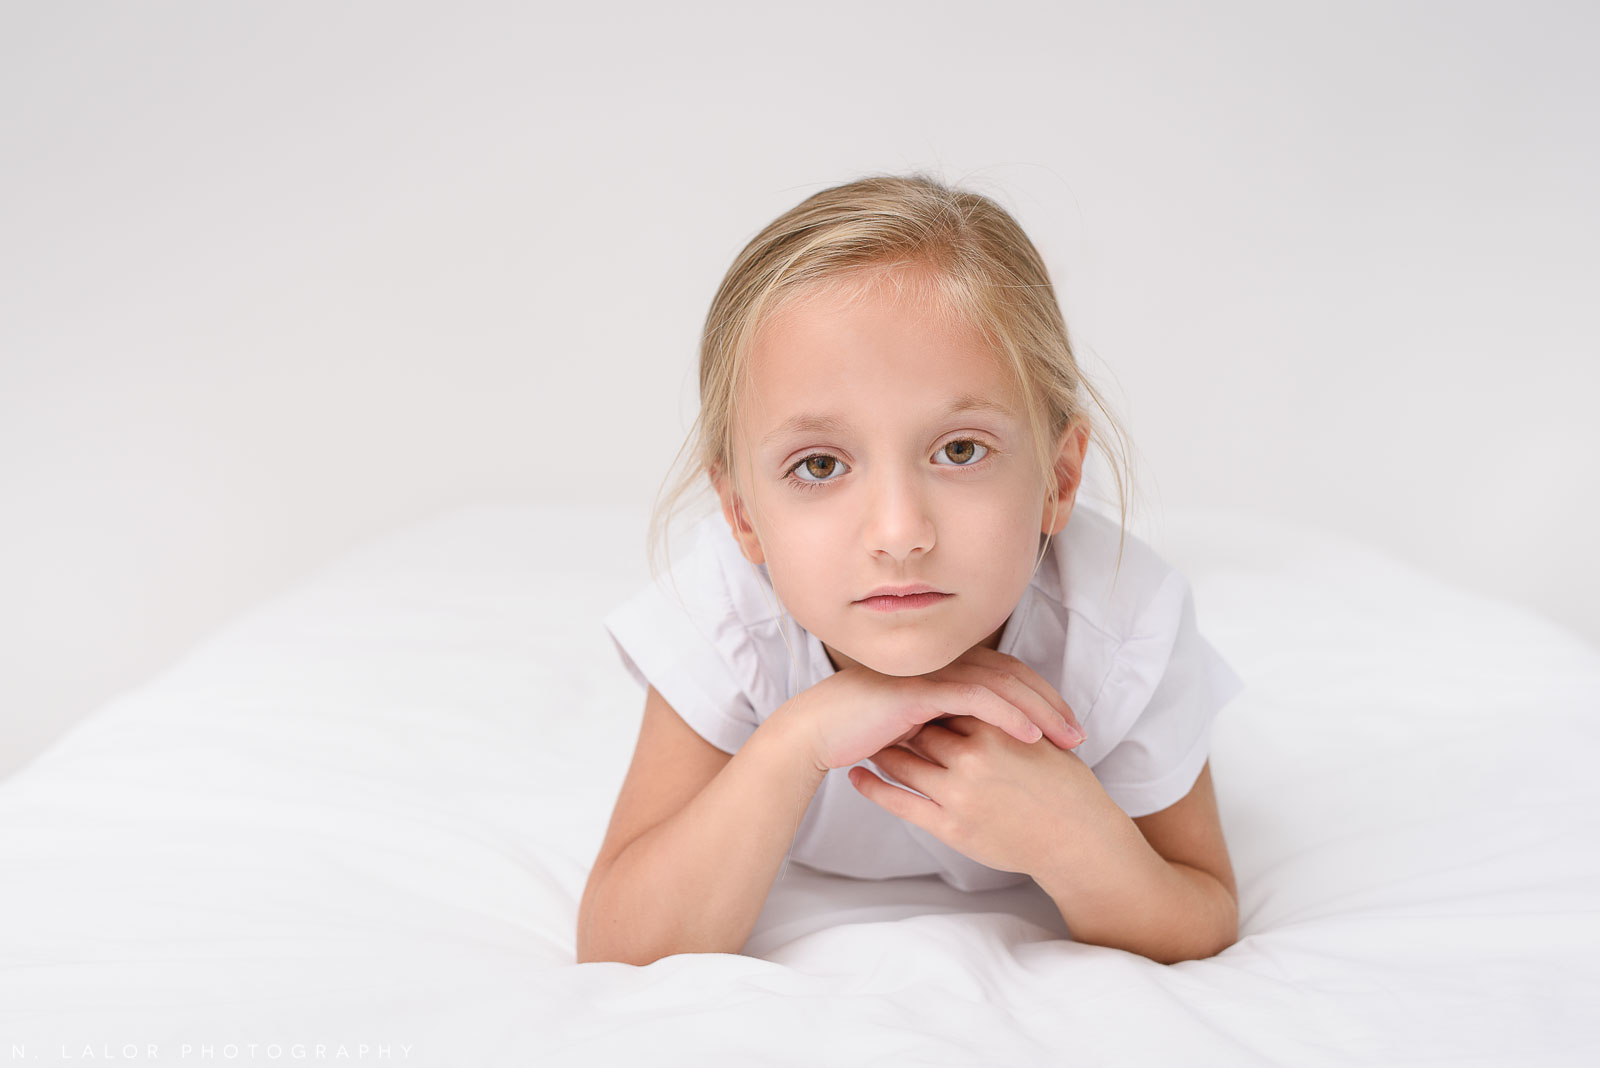 Image of a 6 year old girl on a white bed. Studio portrait by N. Lalor Photography in Greenwich Connecticut.